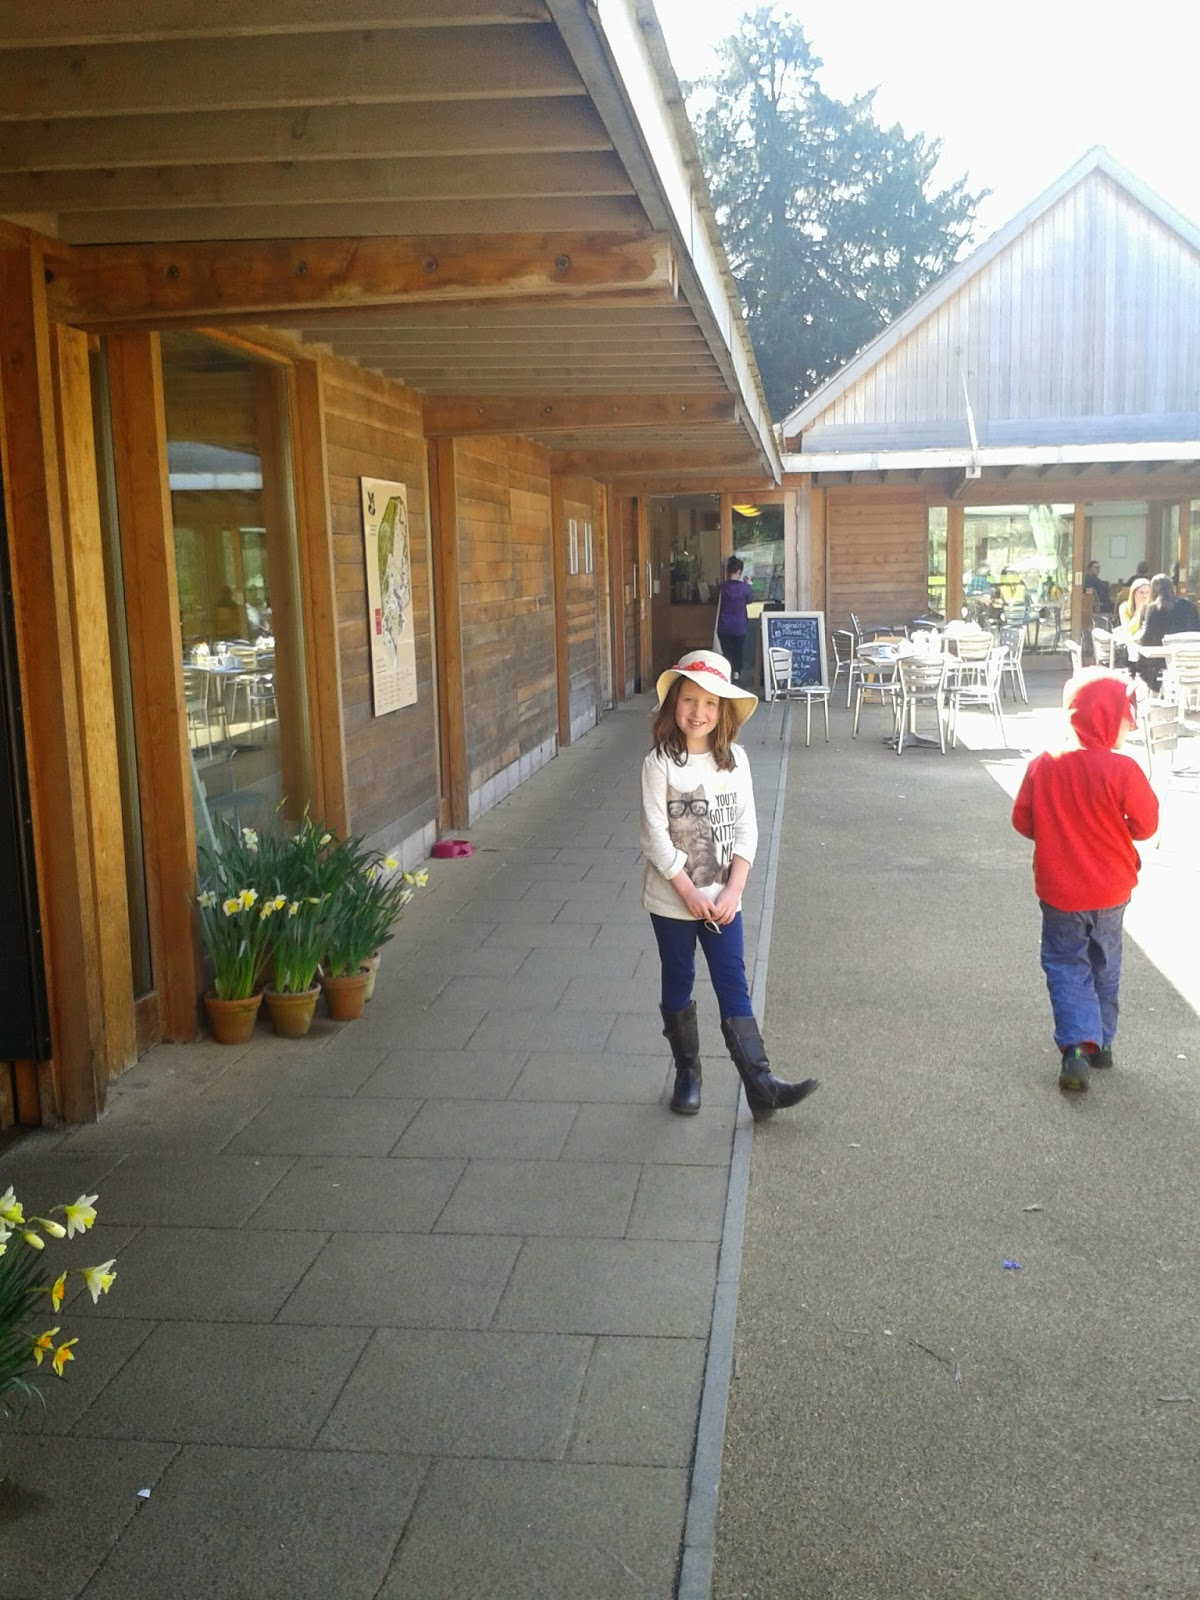 Visitors' Centre & Coffee Shop, Dyffryn Gardens